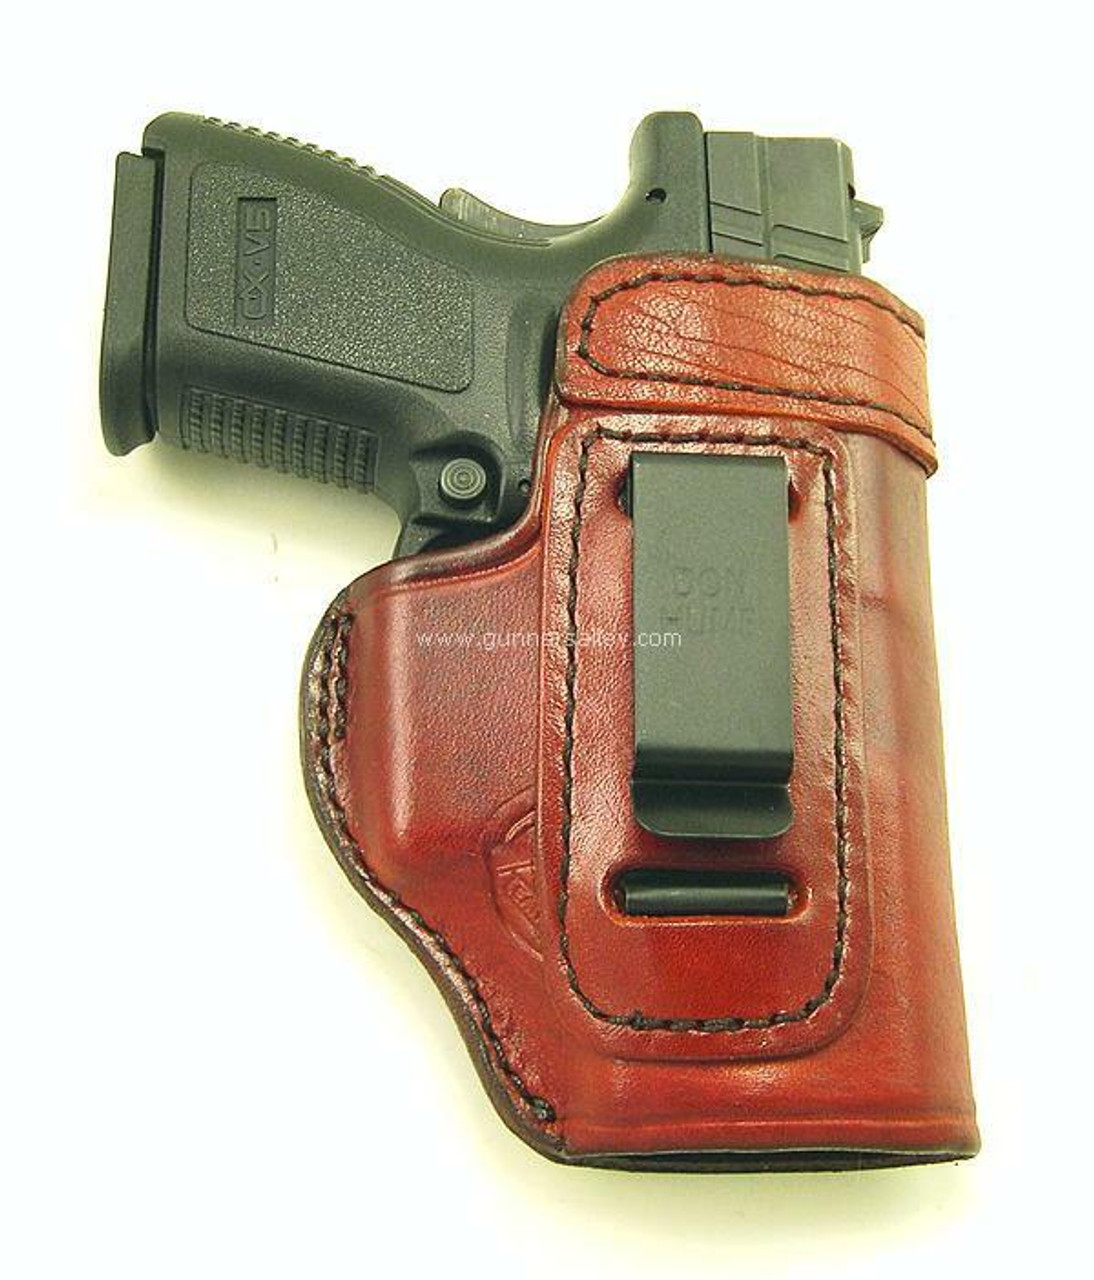 Saddle Brown - Front View - Shown with a Springfield XD SubCompact for Demonstration Purposes